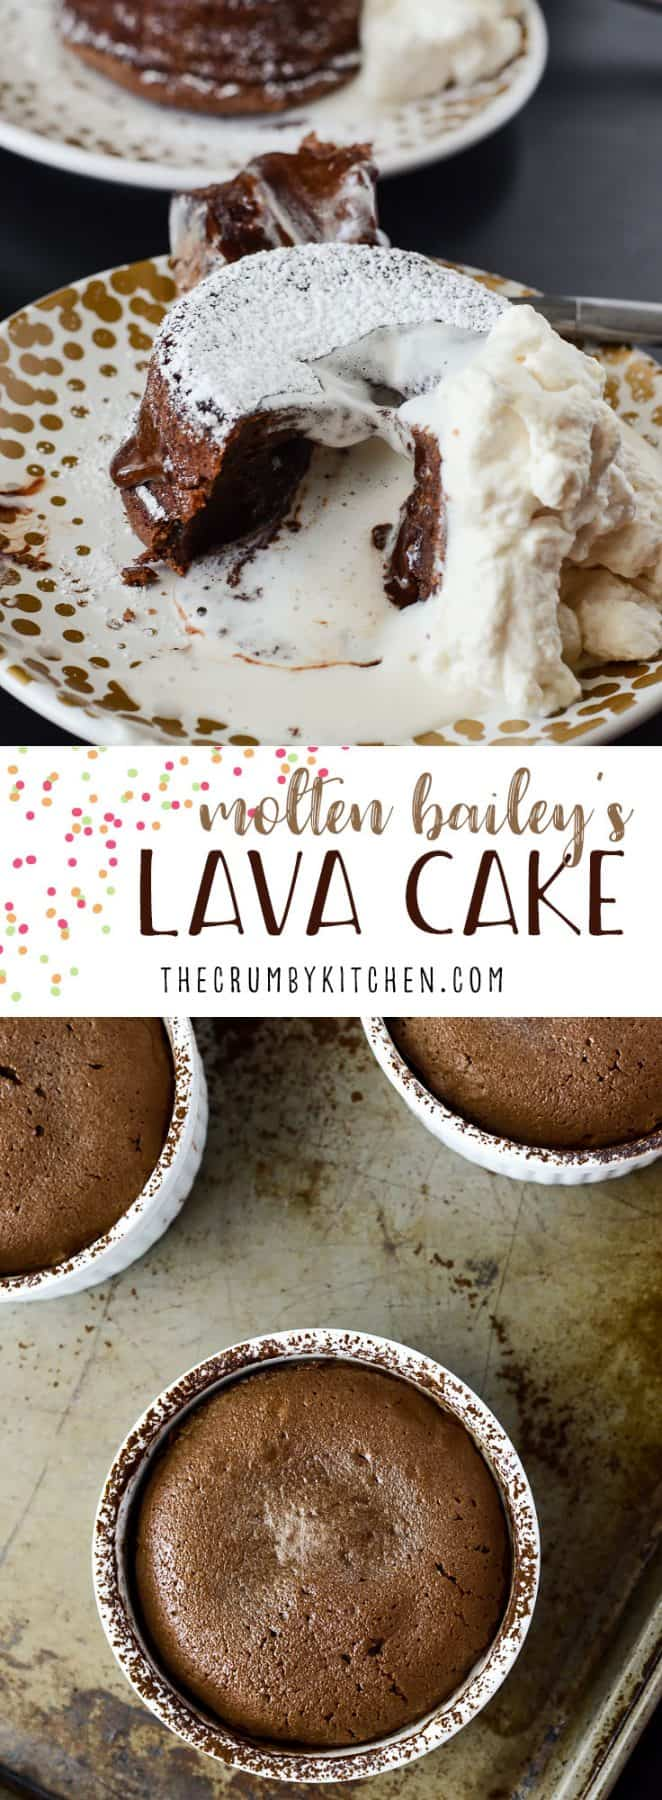 A creamy twist on a chocoholic's favorite, this Bailey's Molten Lava Cake is infused & topped with Irish Creme. Decadent - but perfectly sized for just one!